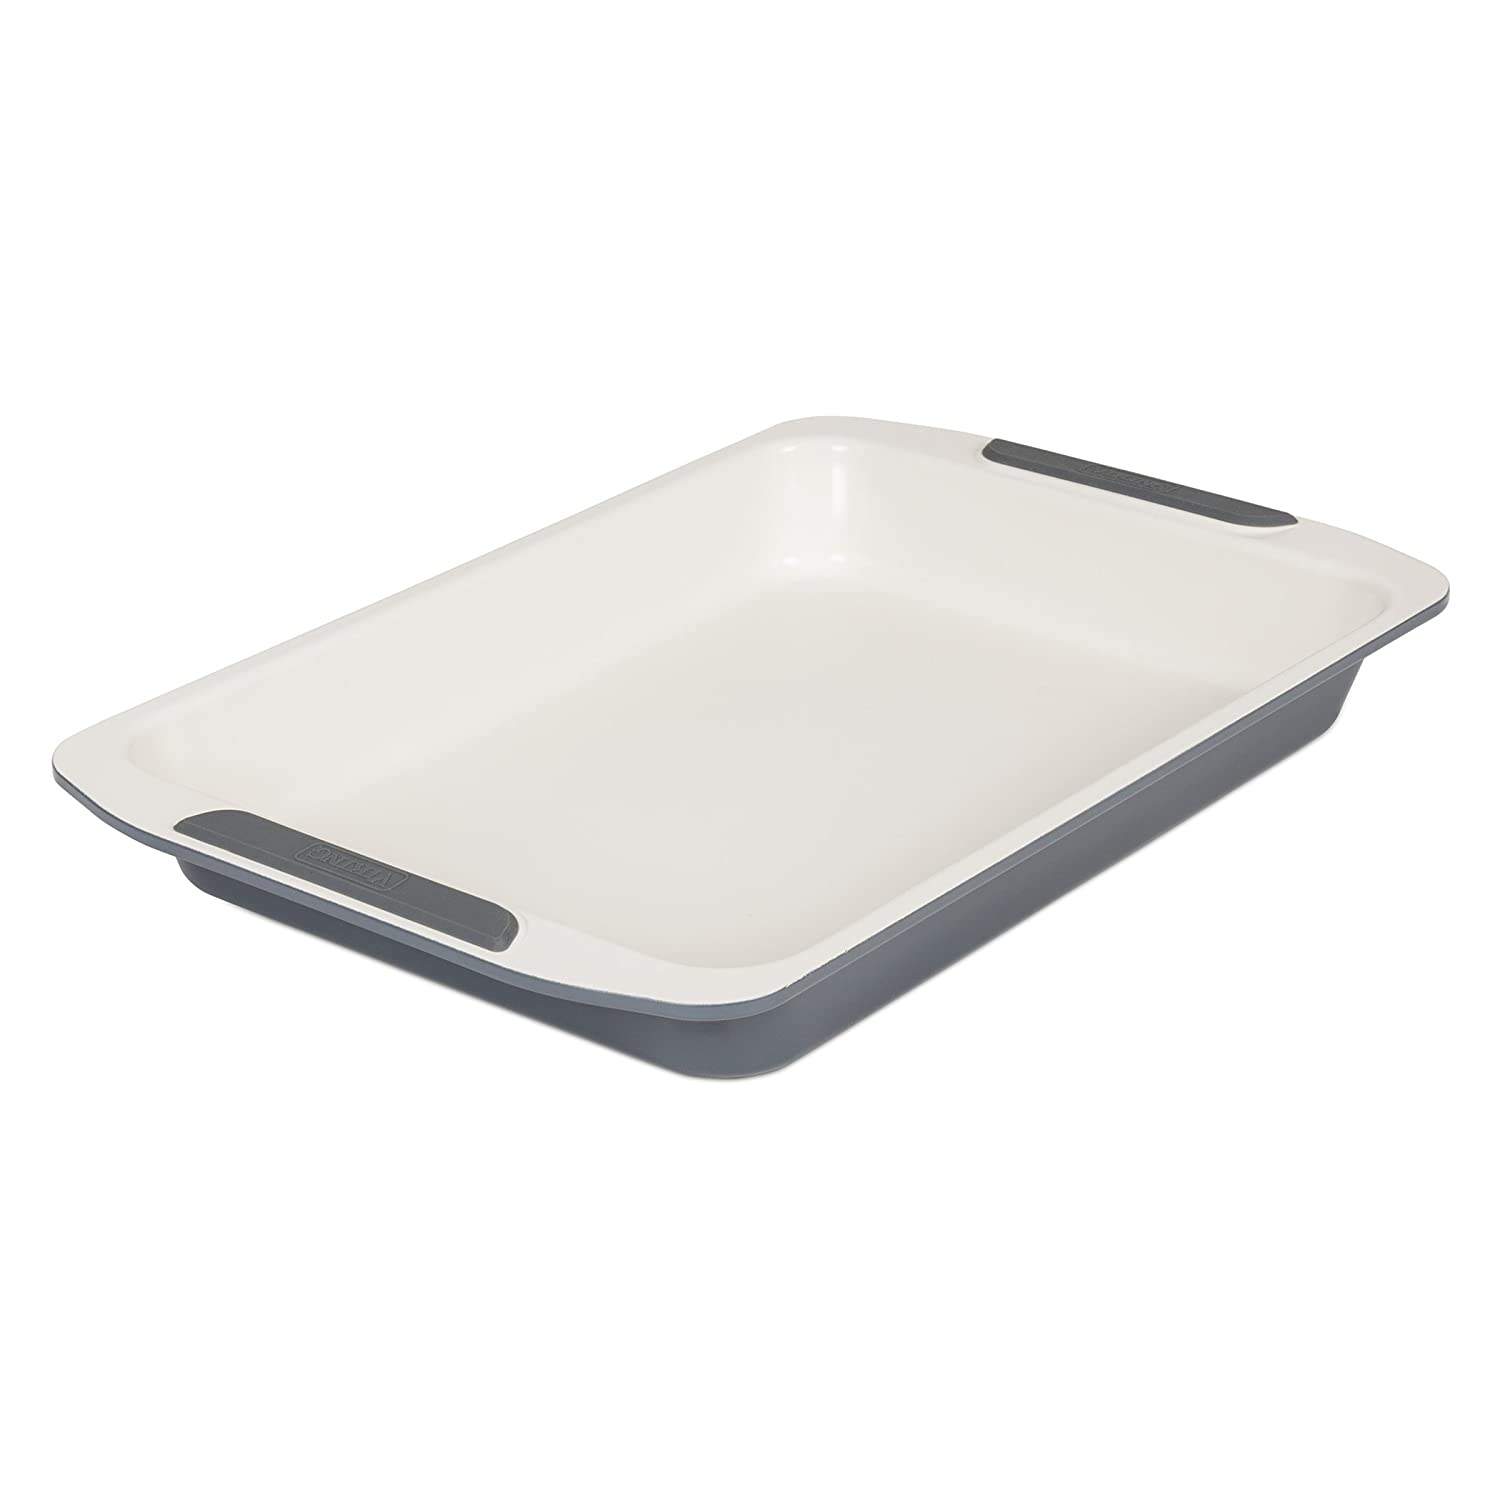 Viking Ceramic Nonstick Bakeware Roast Baking Sheet, 13 Inch Viking Culinary 4040-3313-CGY